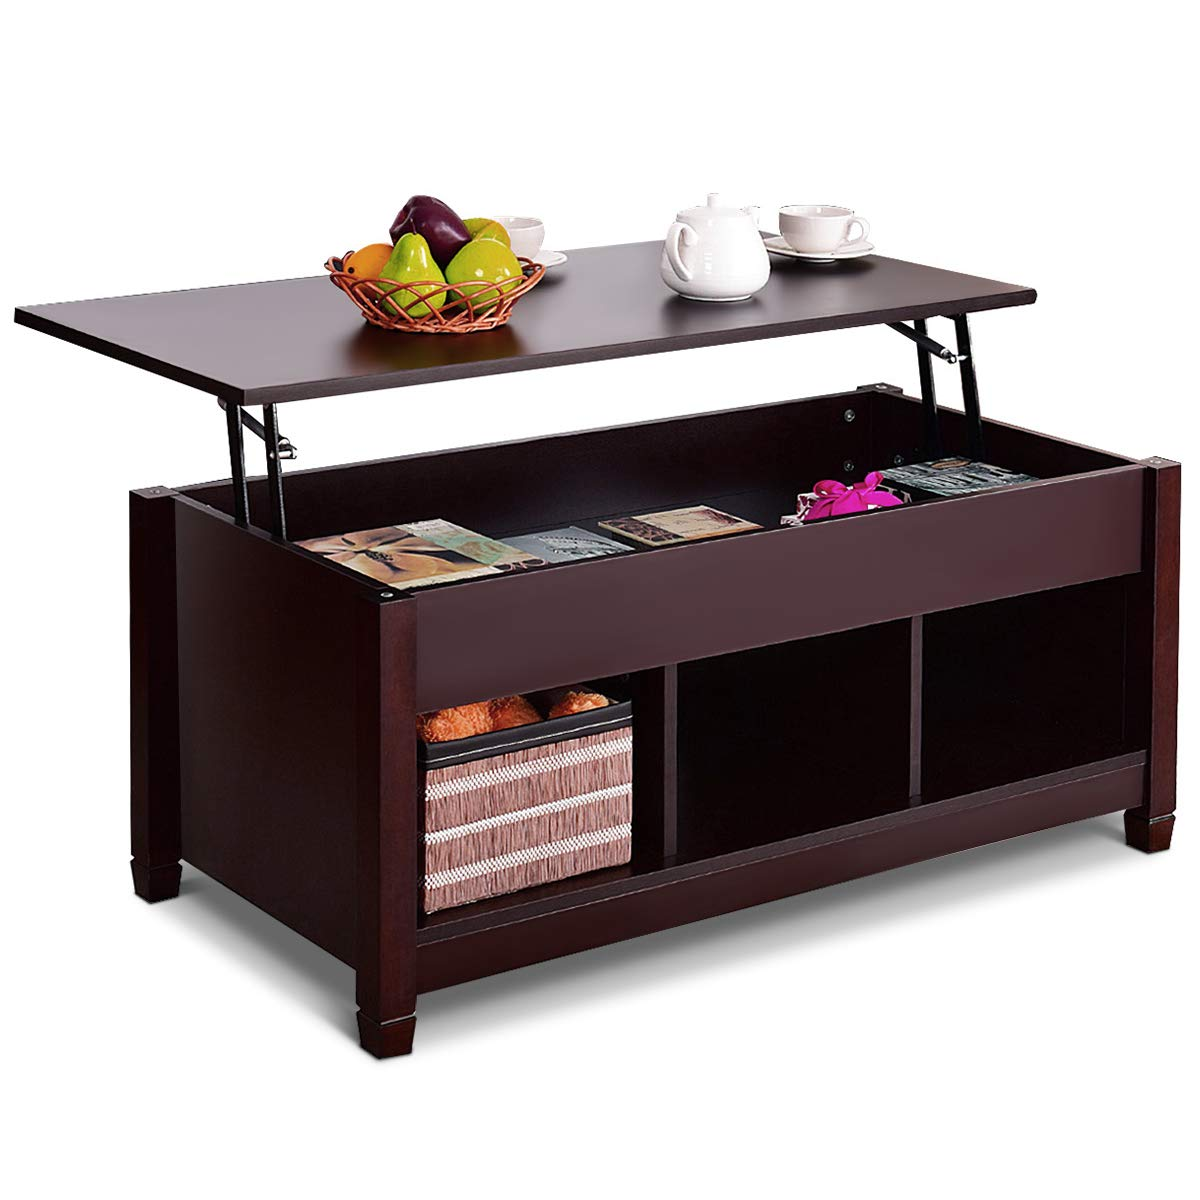 Tangkula coffee table lift top wood home living room modern lift top storage coffee table w hidden compartment lift tabletop furniture brown with lower